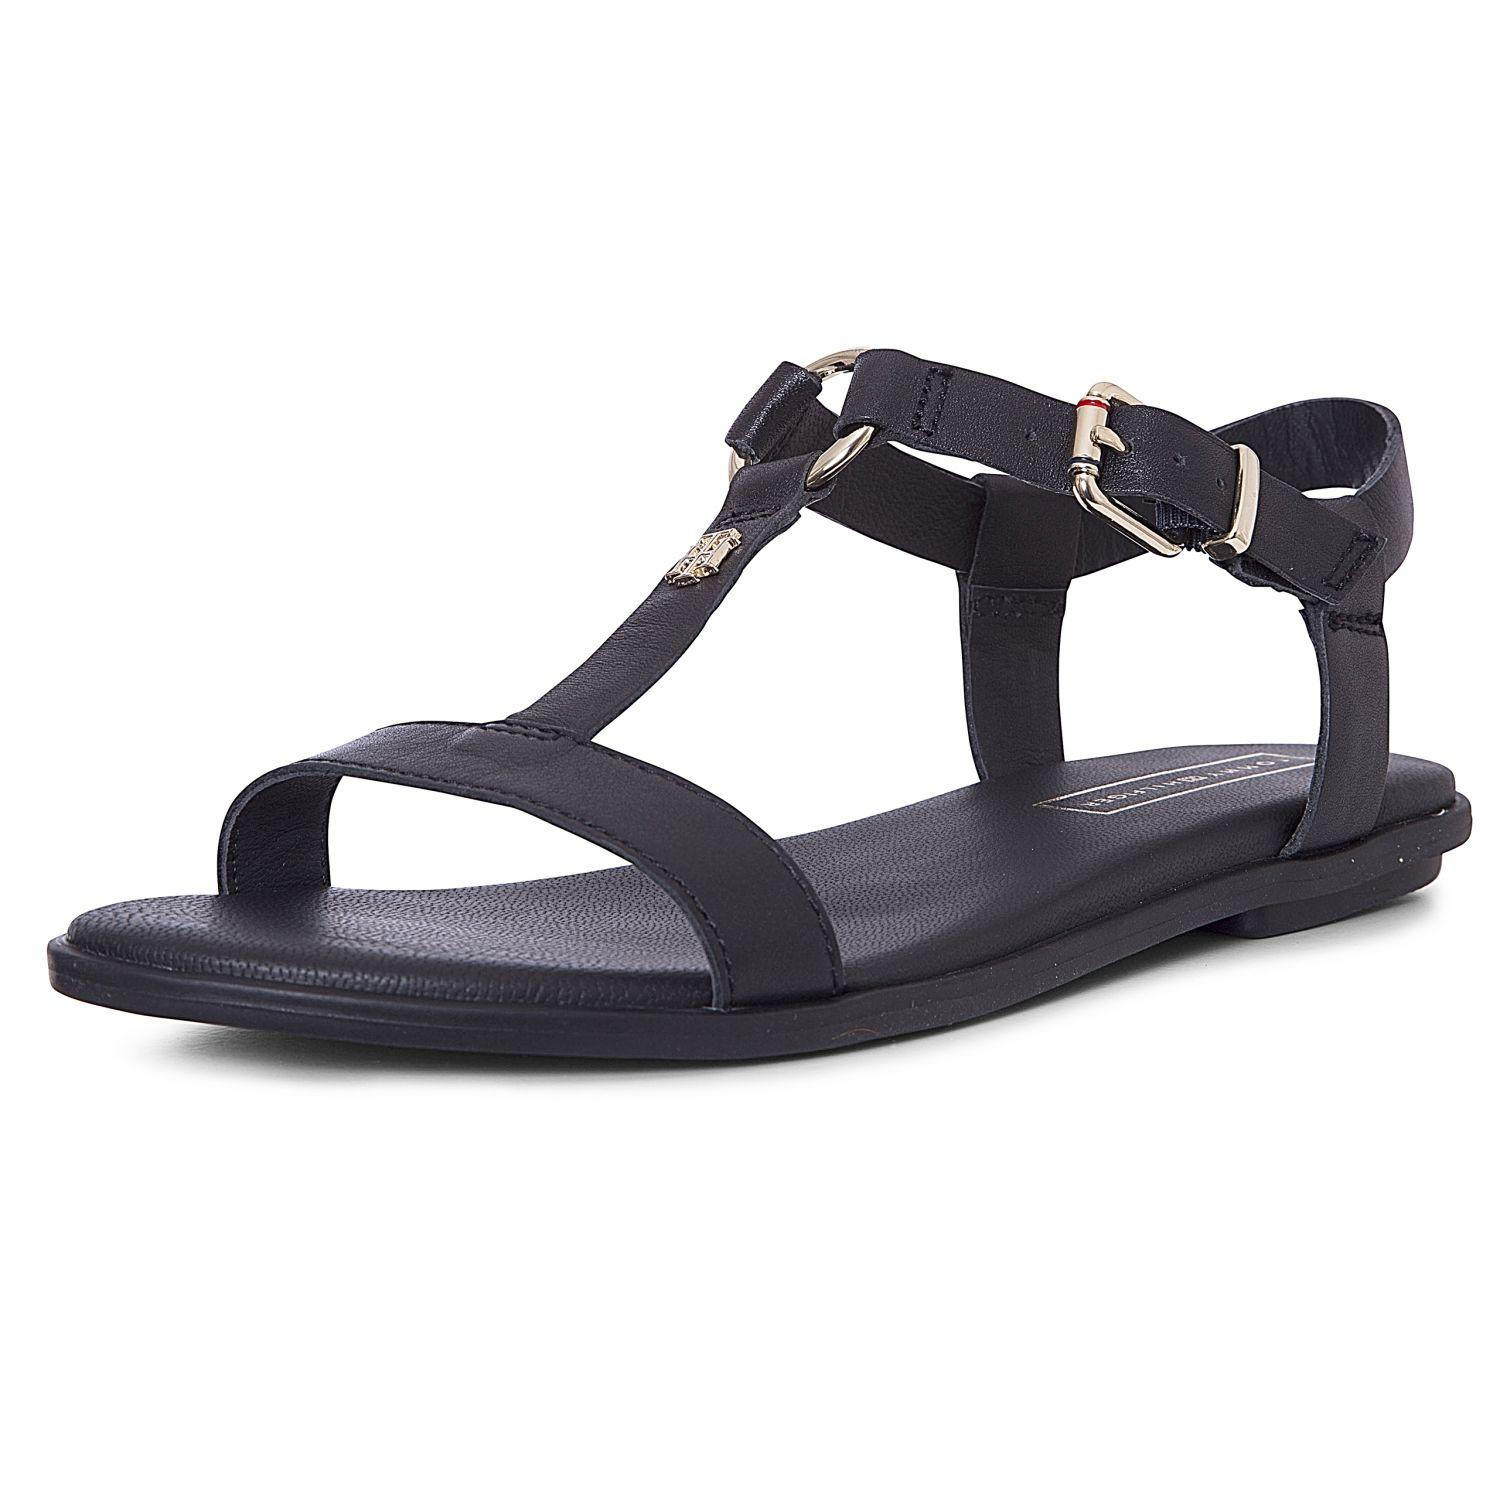 cb5ae337ce Damen Sandale Elevated Leather Flat Sandal von Tommy Hilfiger ...